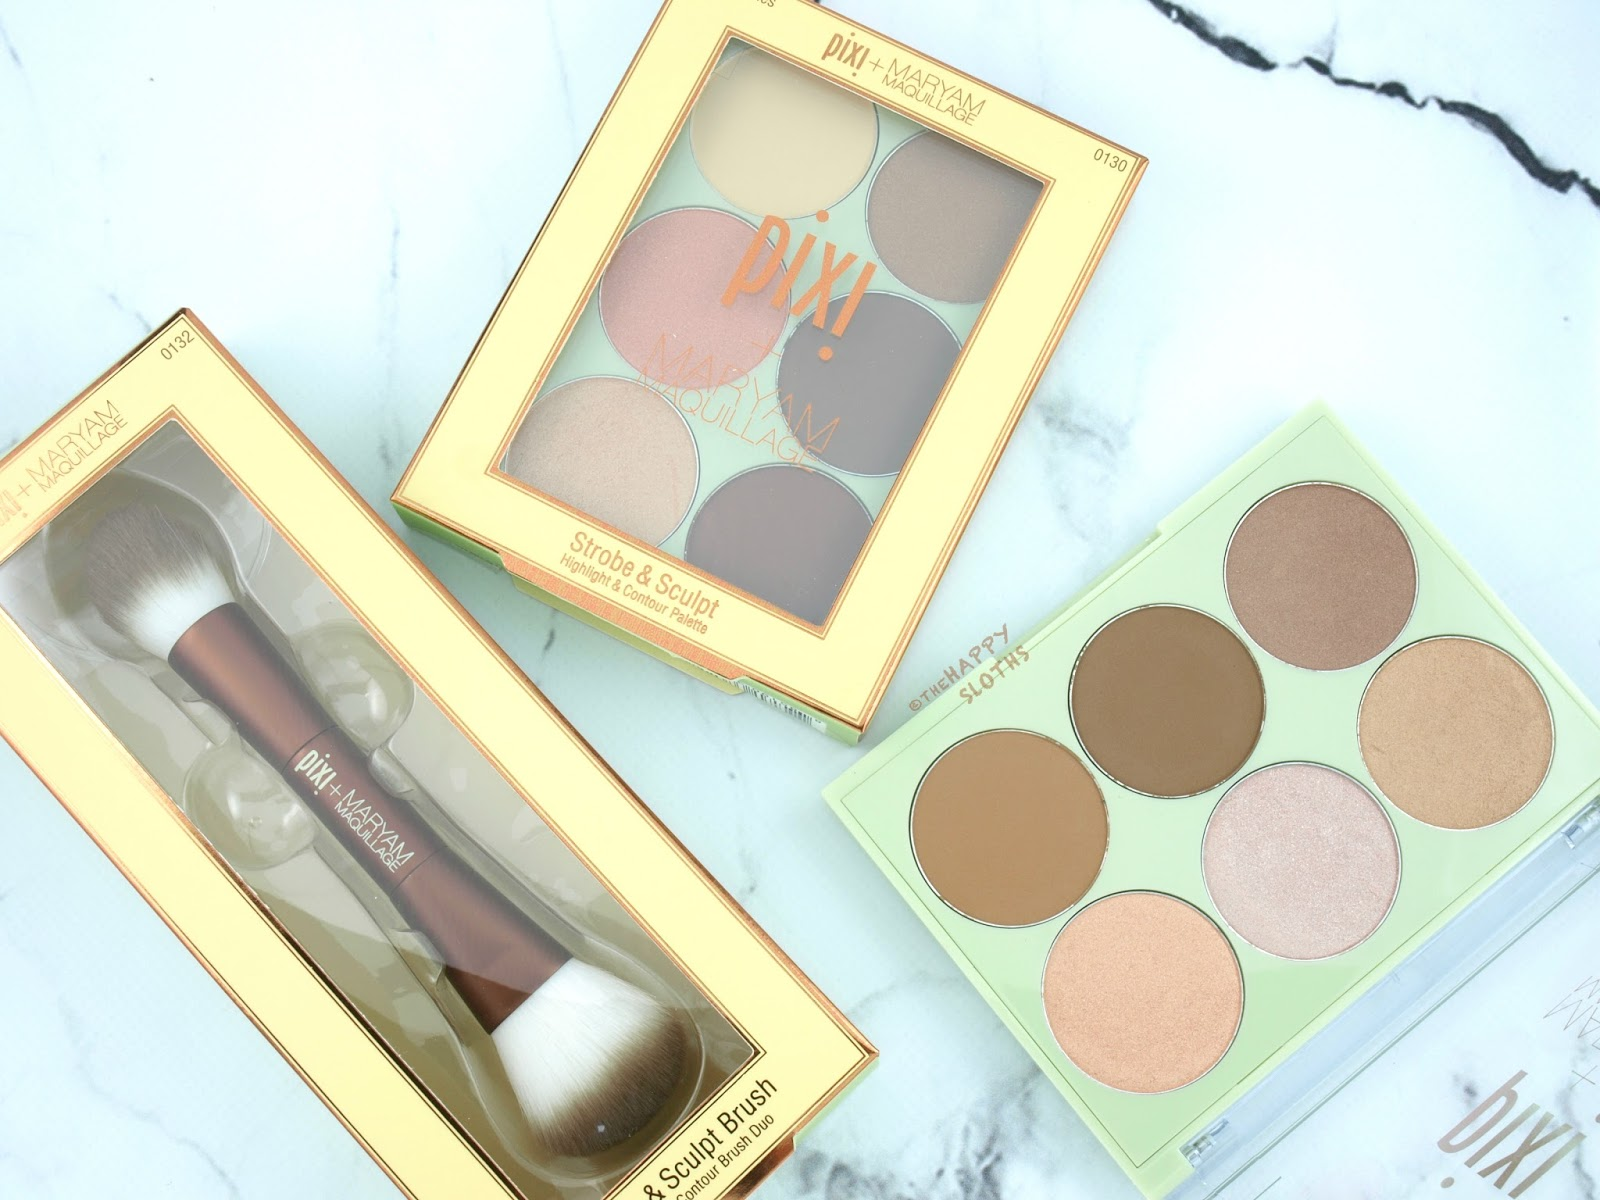 Pixi + Maryam Maquillage Collaboration | Strobe & Sculpt + Strobe & Bronze Palettes: Review and Swatches